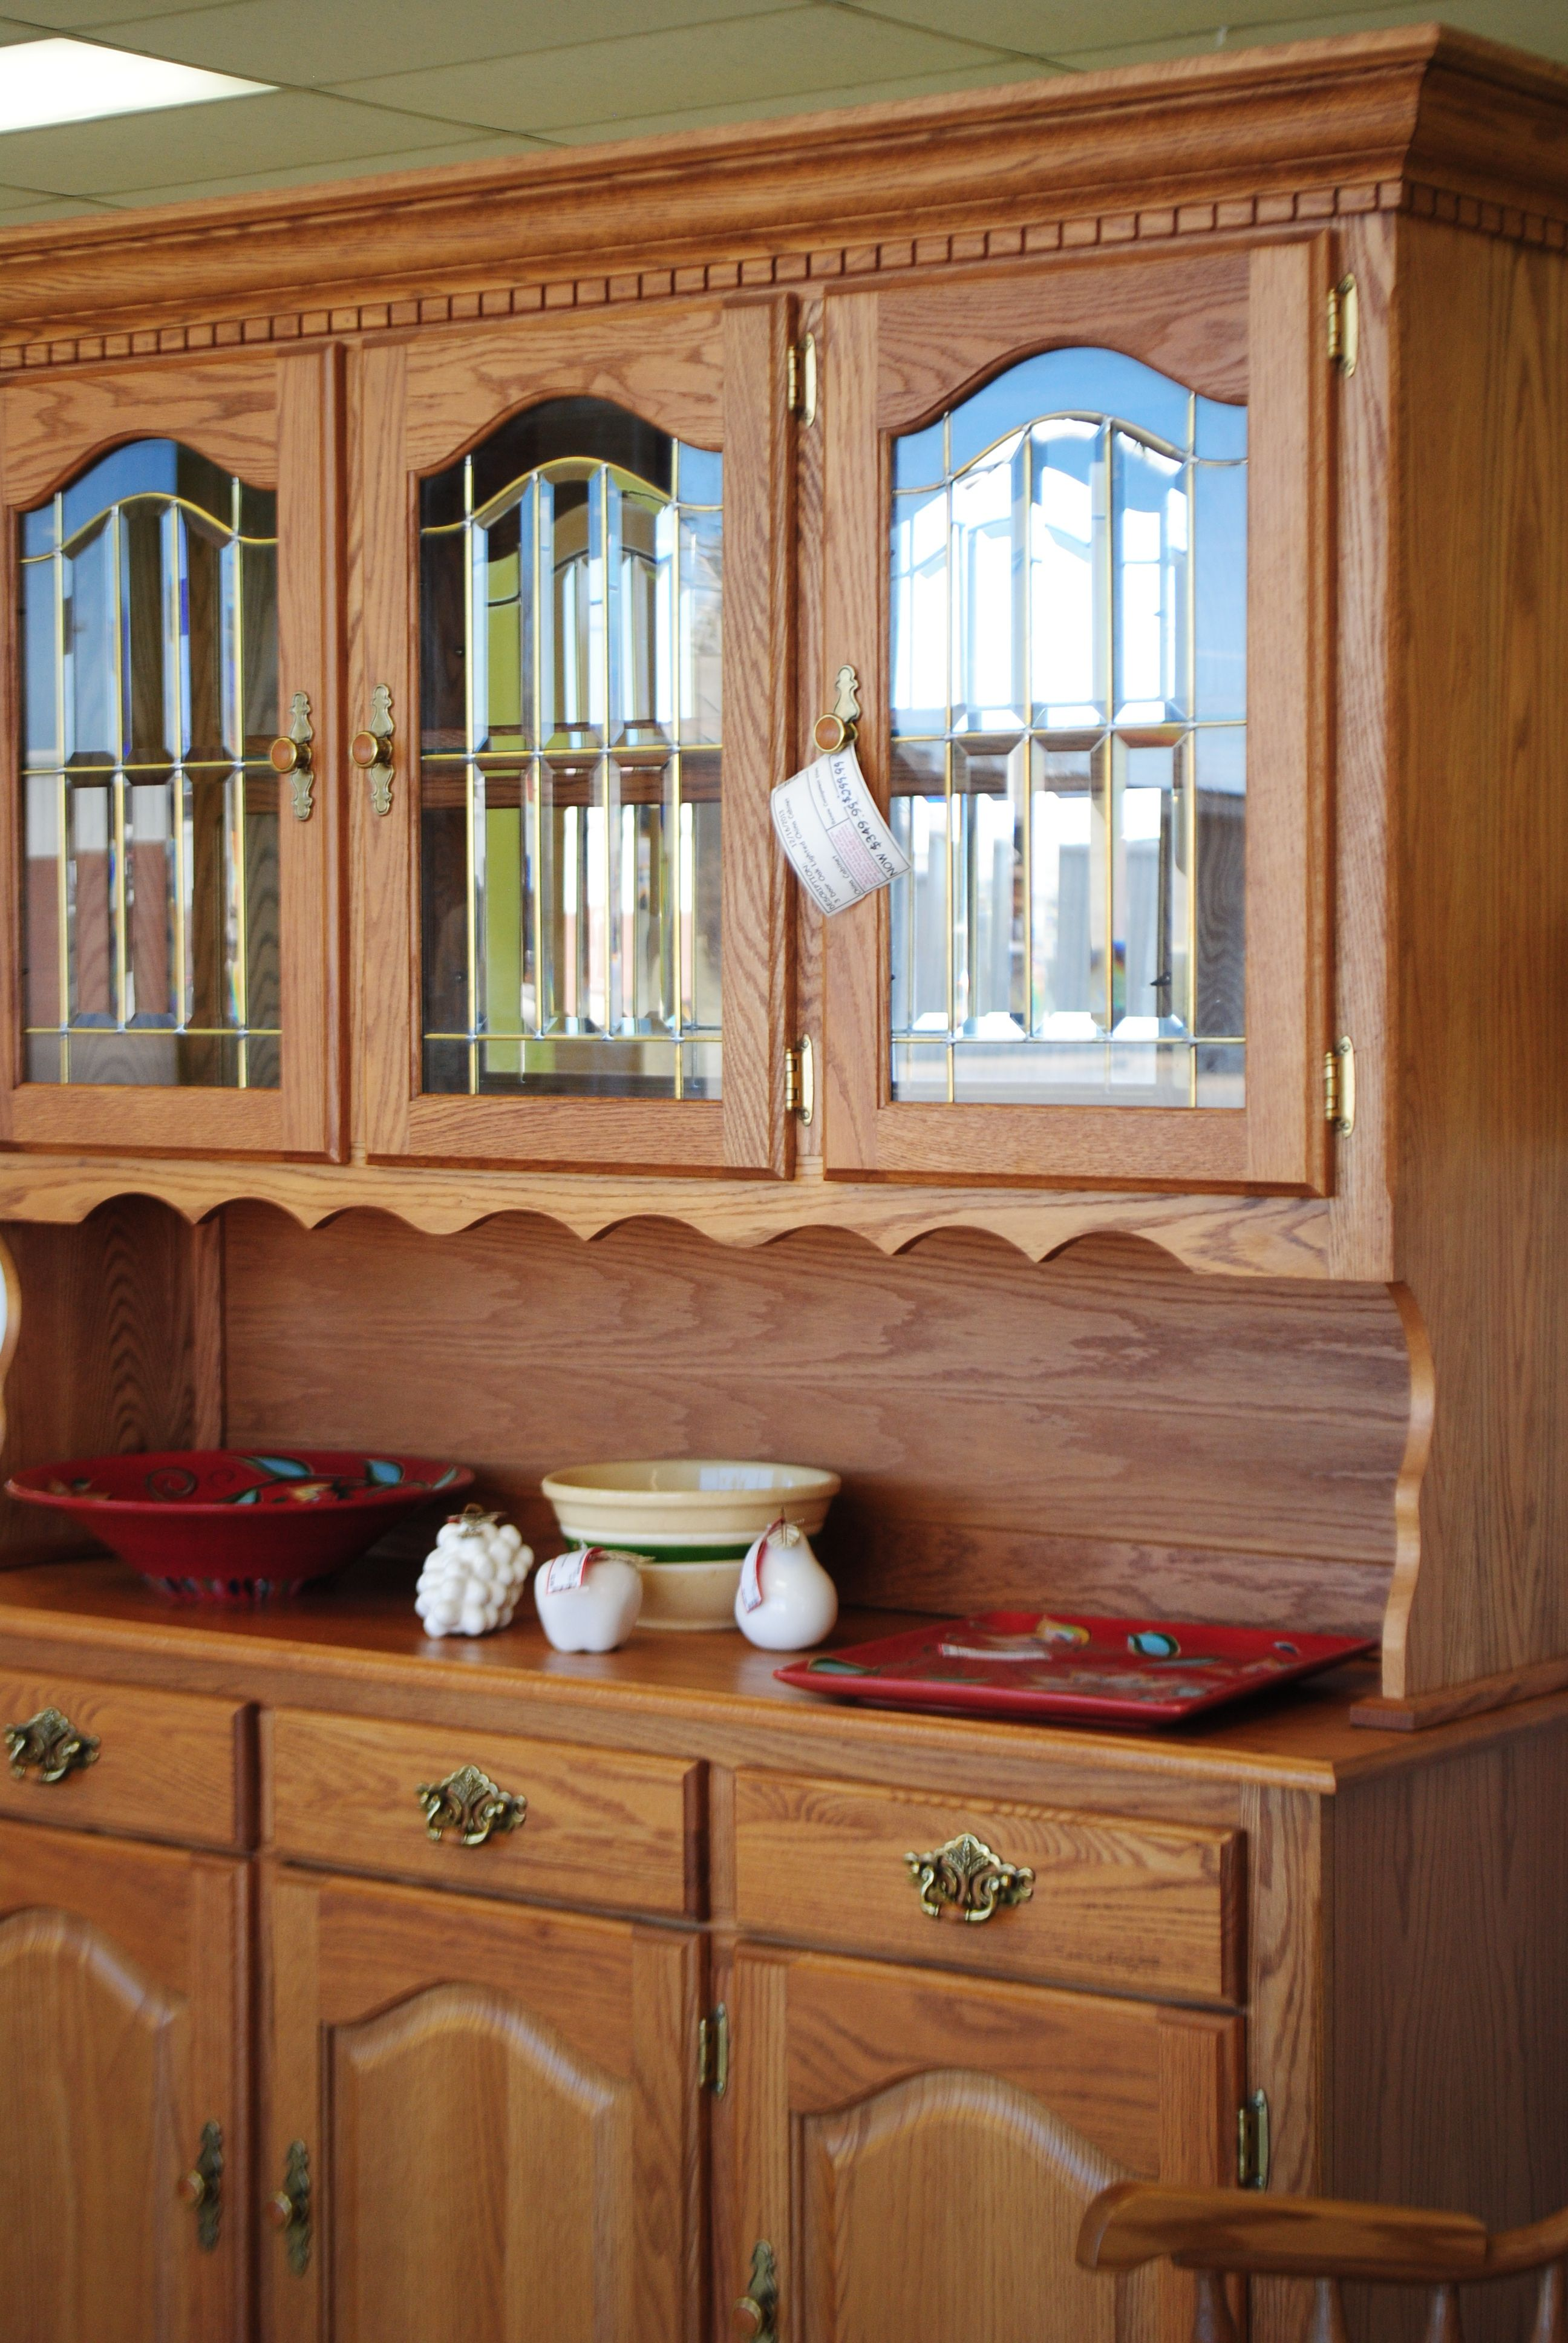 sale hutch used oak near for of and full size door antique doors cheap kitchen small cabinet with buffet me ideas glass white